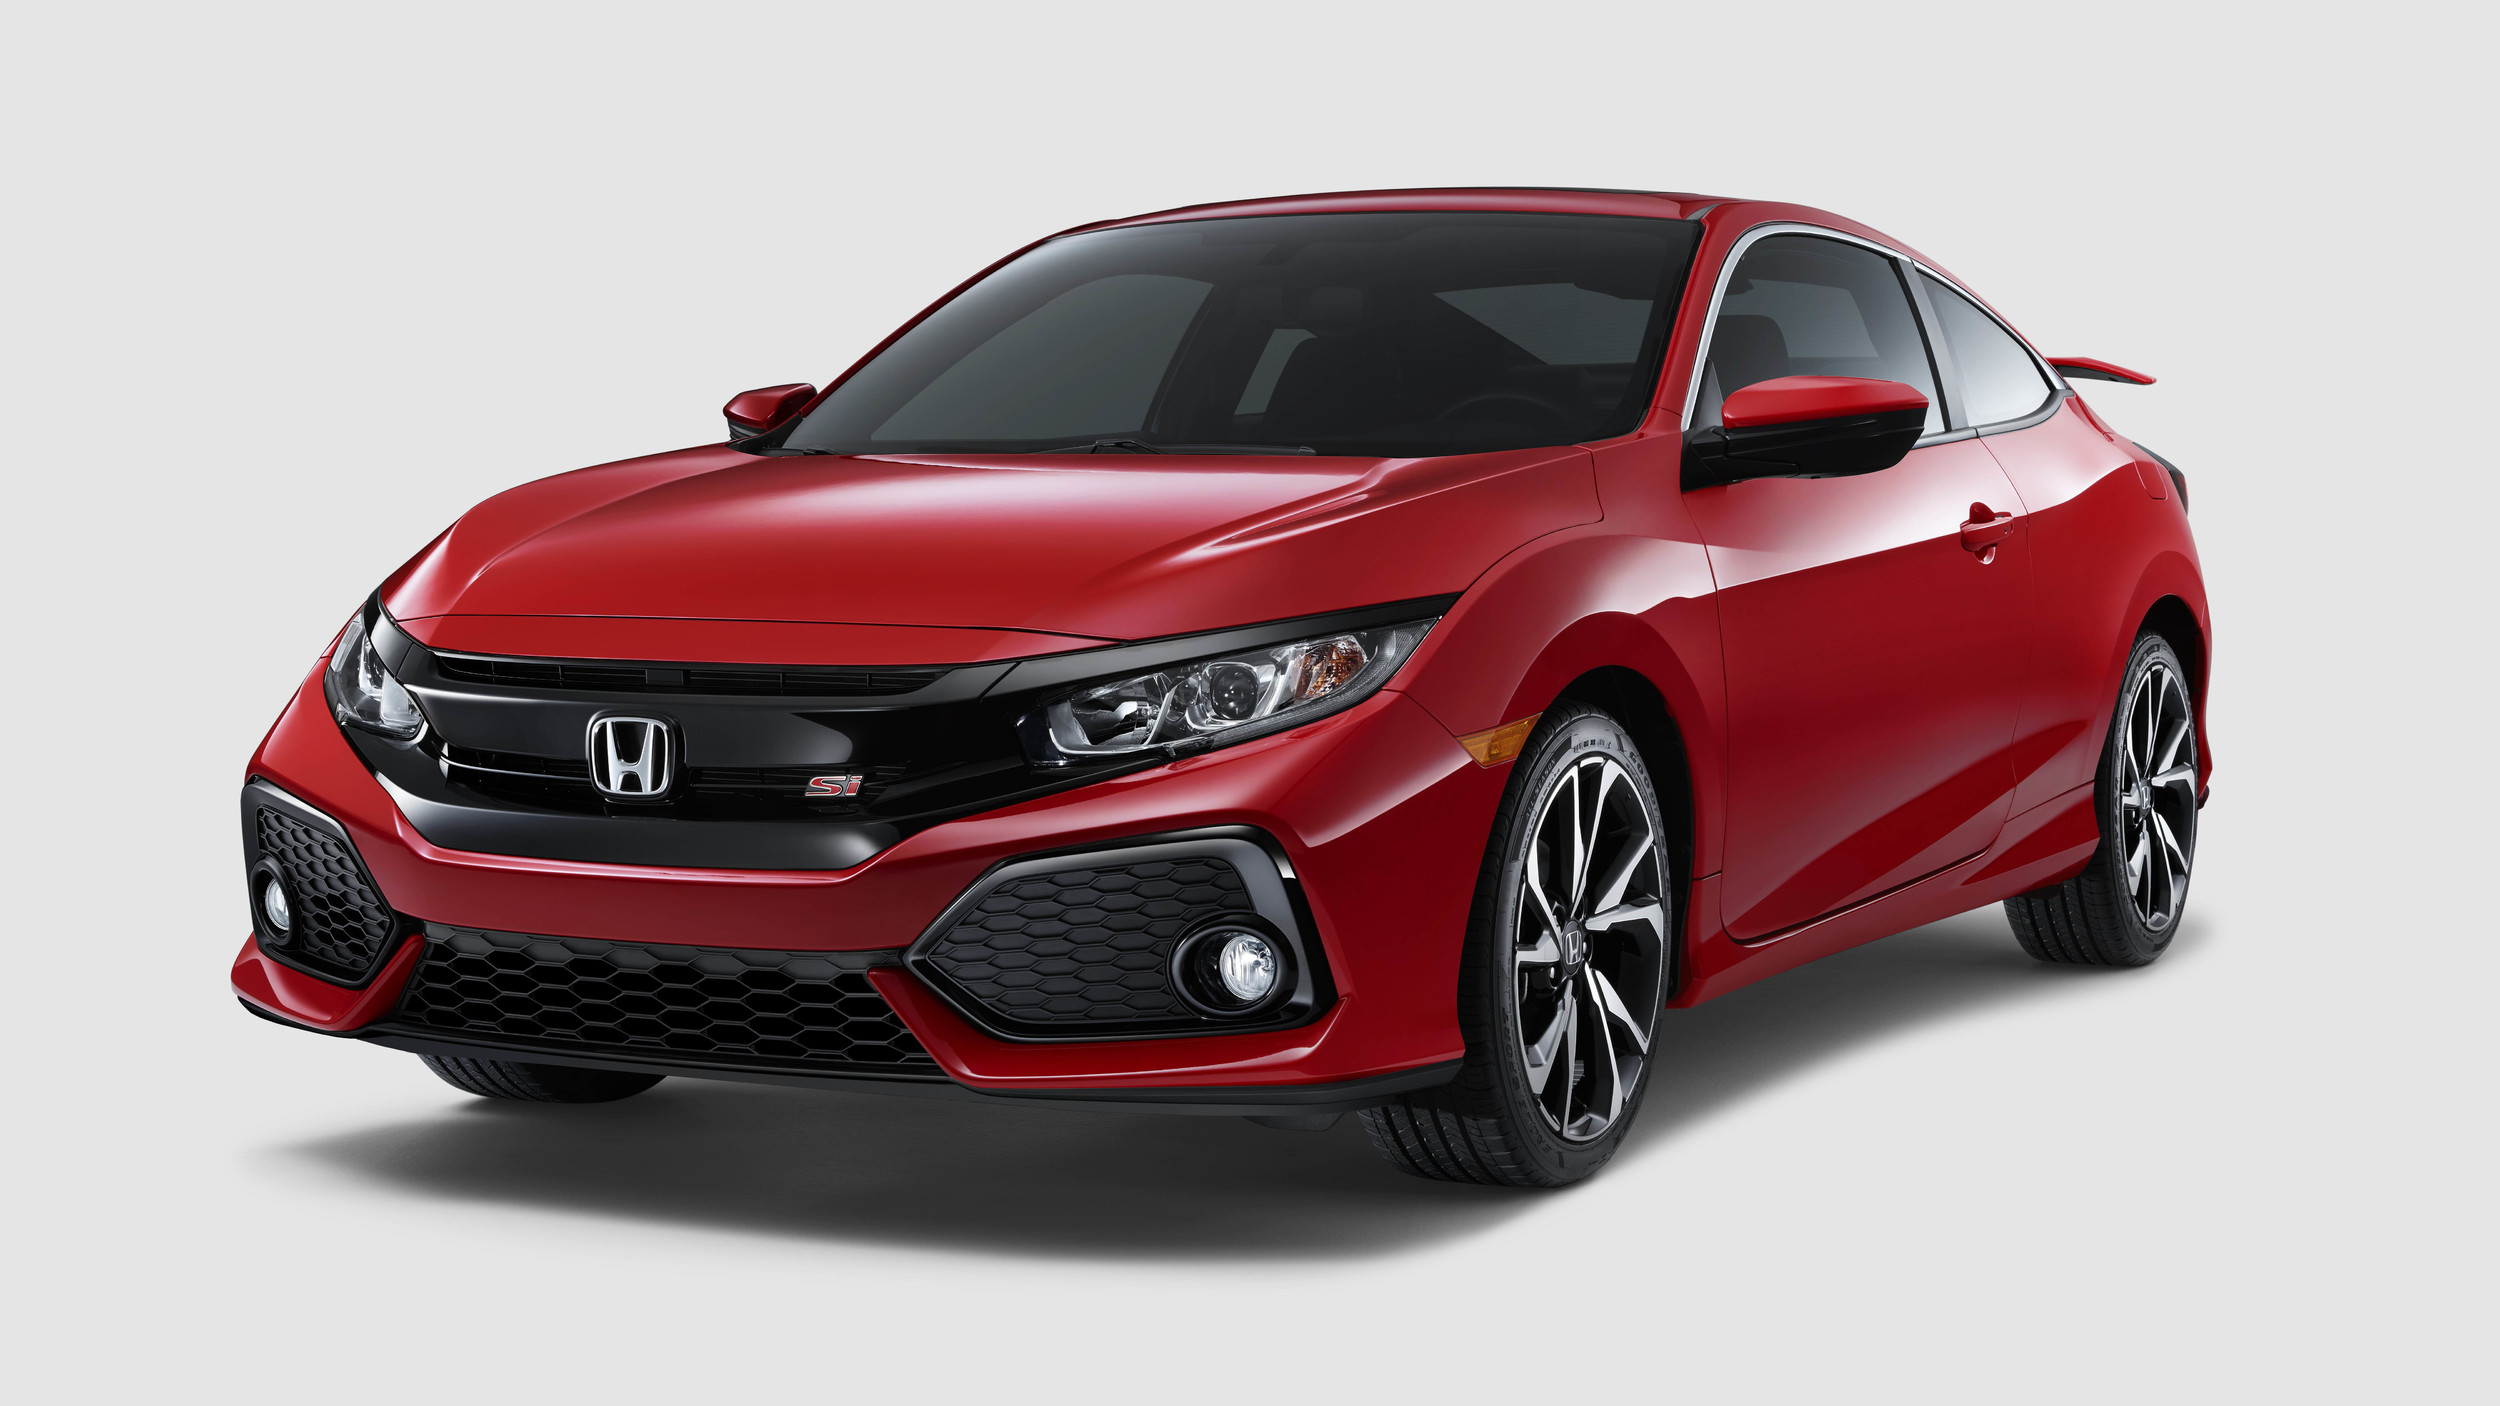 Honda Civic Si 2018 (7)